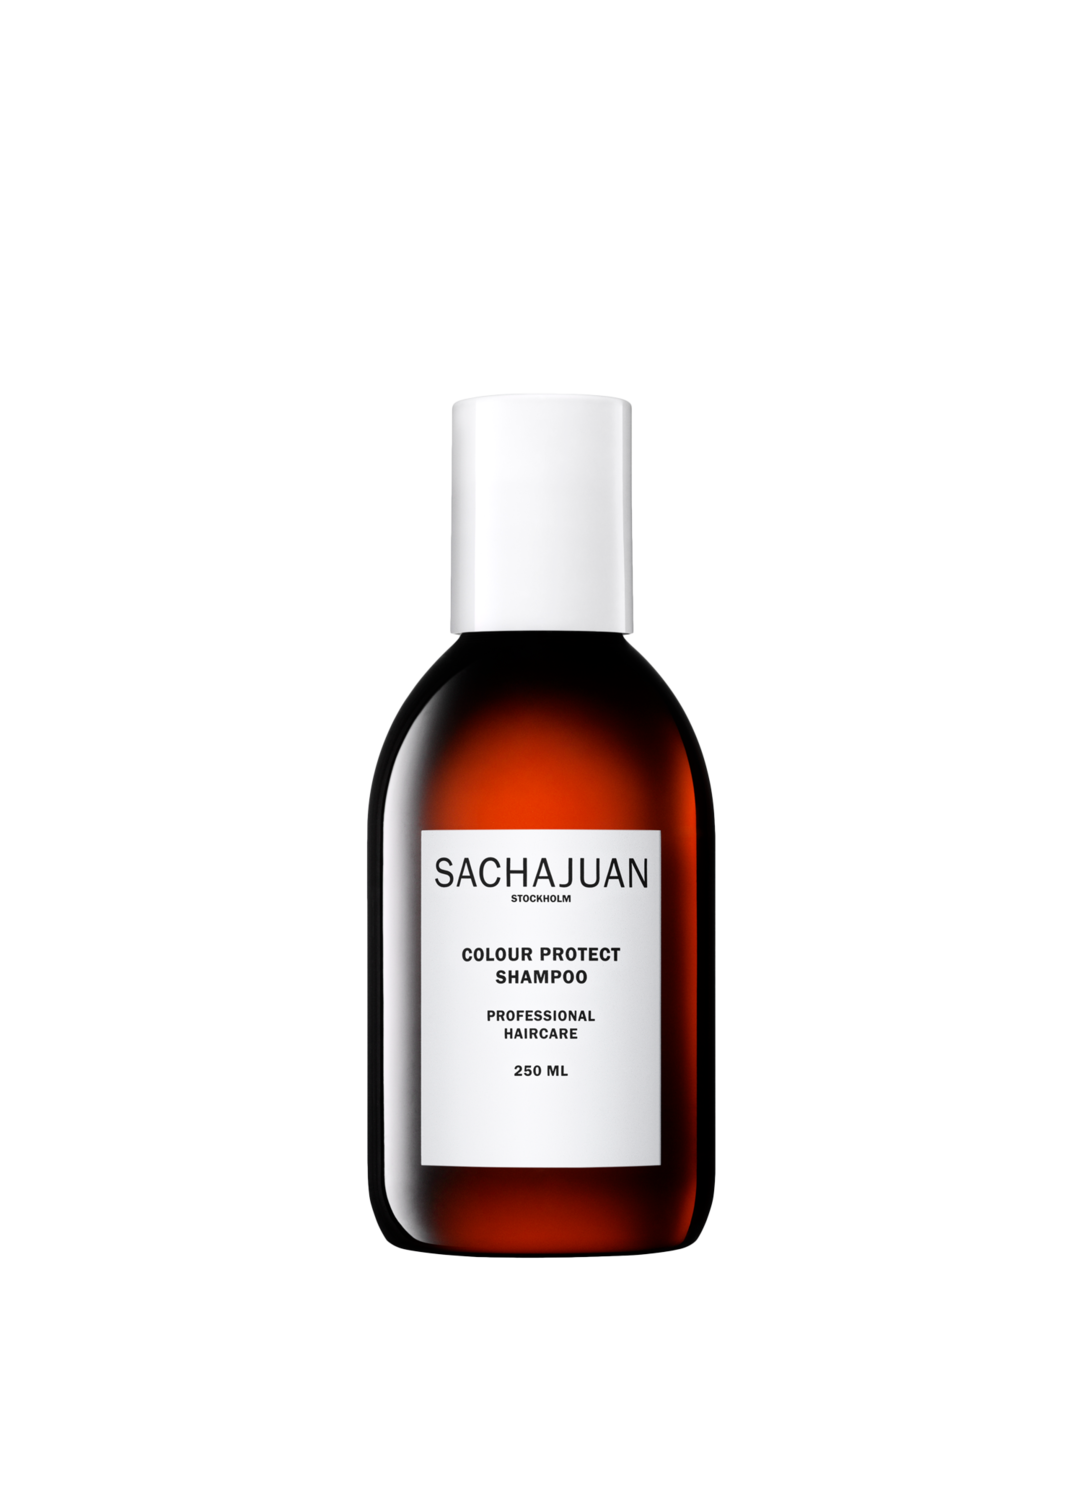 sachajuan color protect shampoo